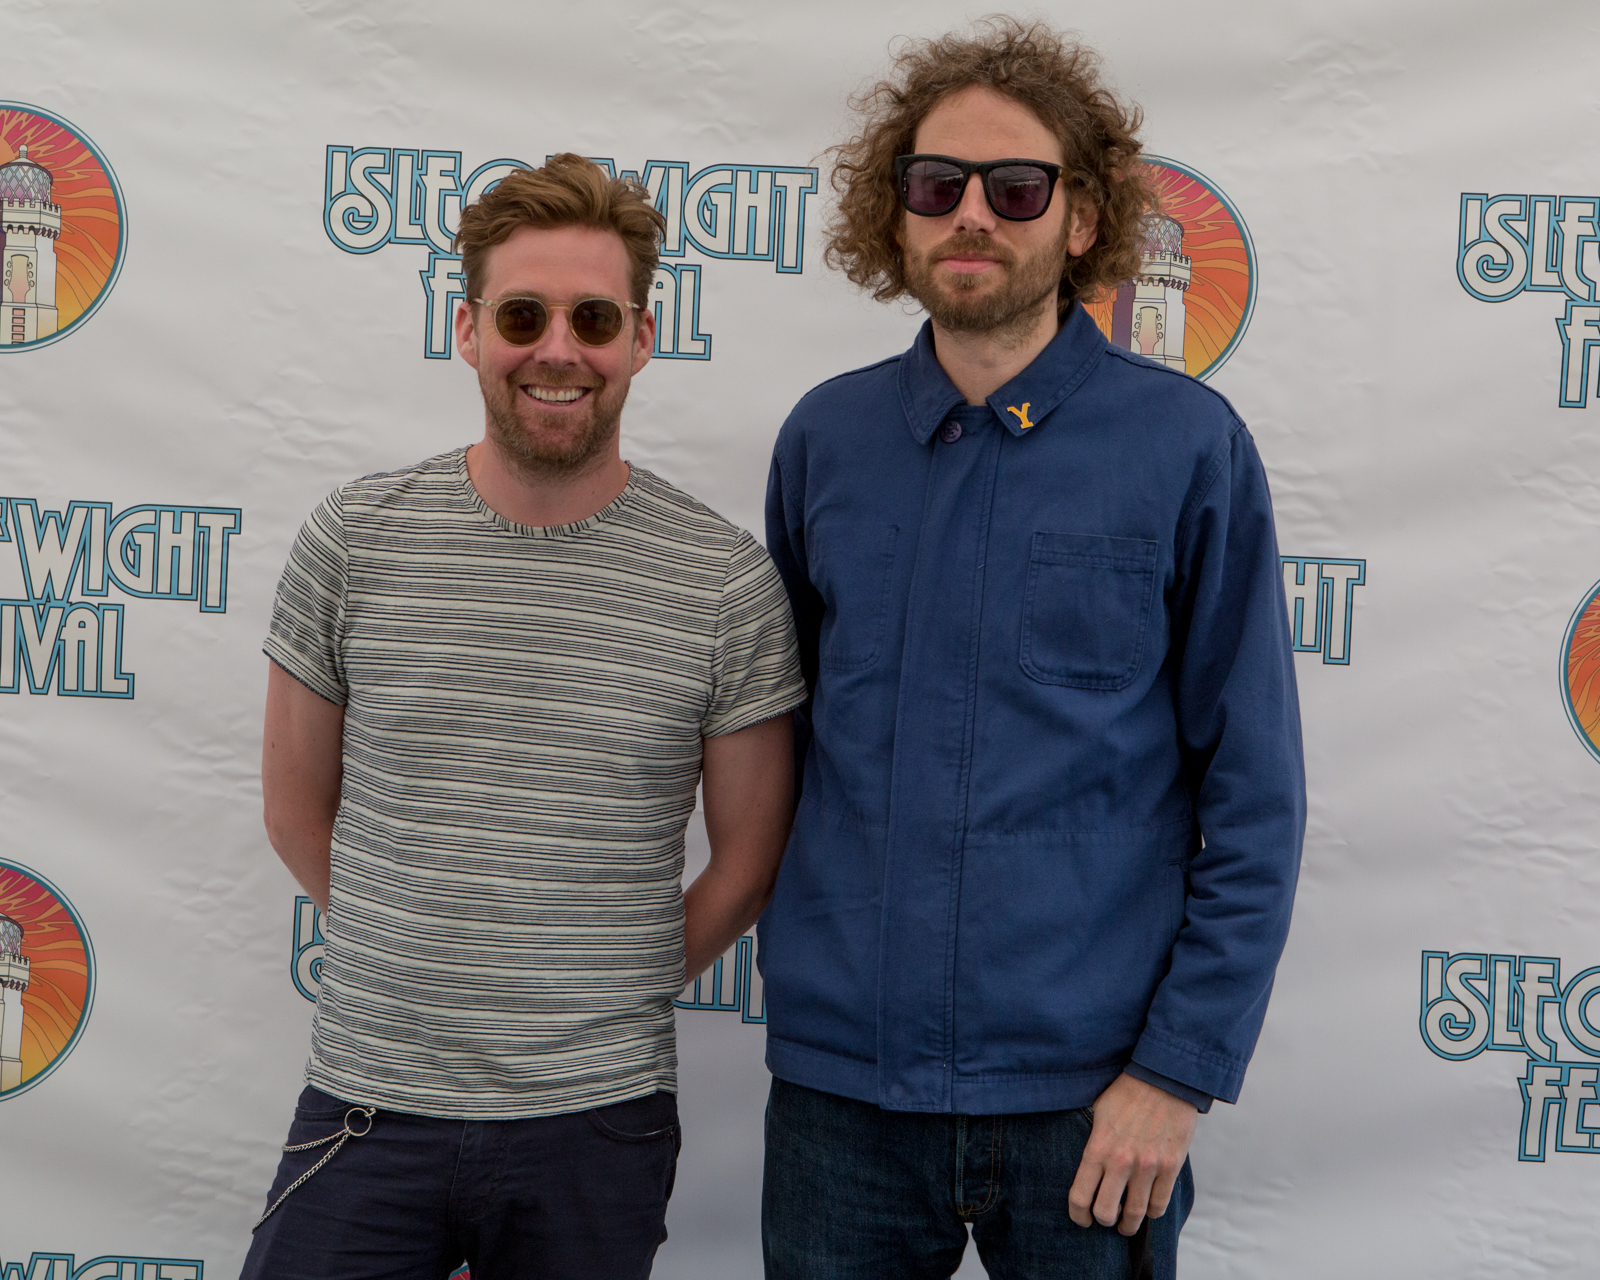 Ricky Wilson of Kaiser Chiefs at Isle of Wight Festival